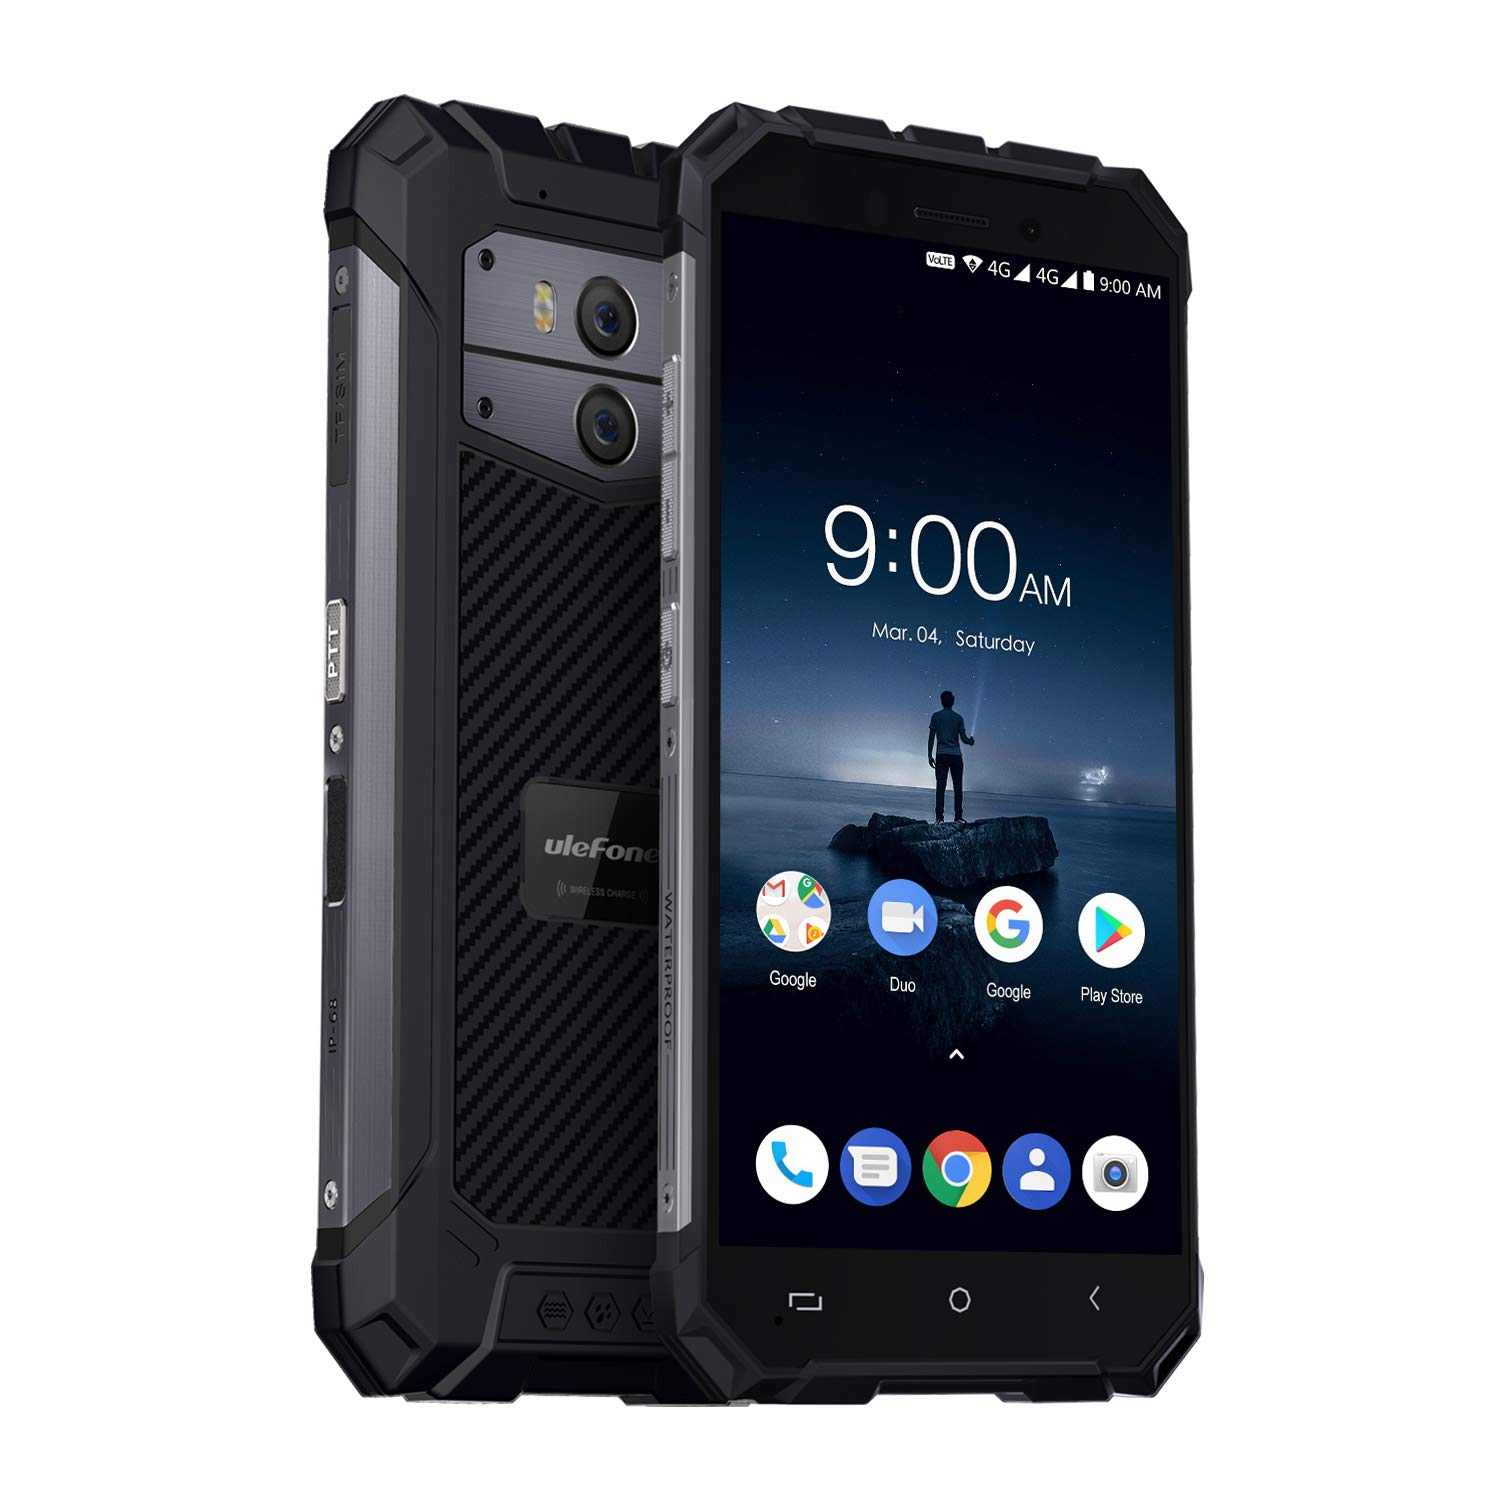 Ulefone Armor X, 4G Outdoor Smartphone Libre(2018) Android 8.1, IP68 Resistente a Polvo y Agua, 5500mAh, Carga Inalámbrica, Pantalla Grande 5.5'' 18:9, 2GB+16GB, QuadCore, Doble SIM, NFC (Gris Oscuro)